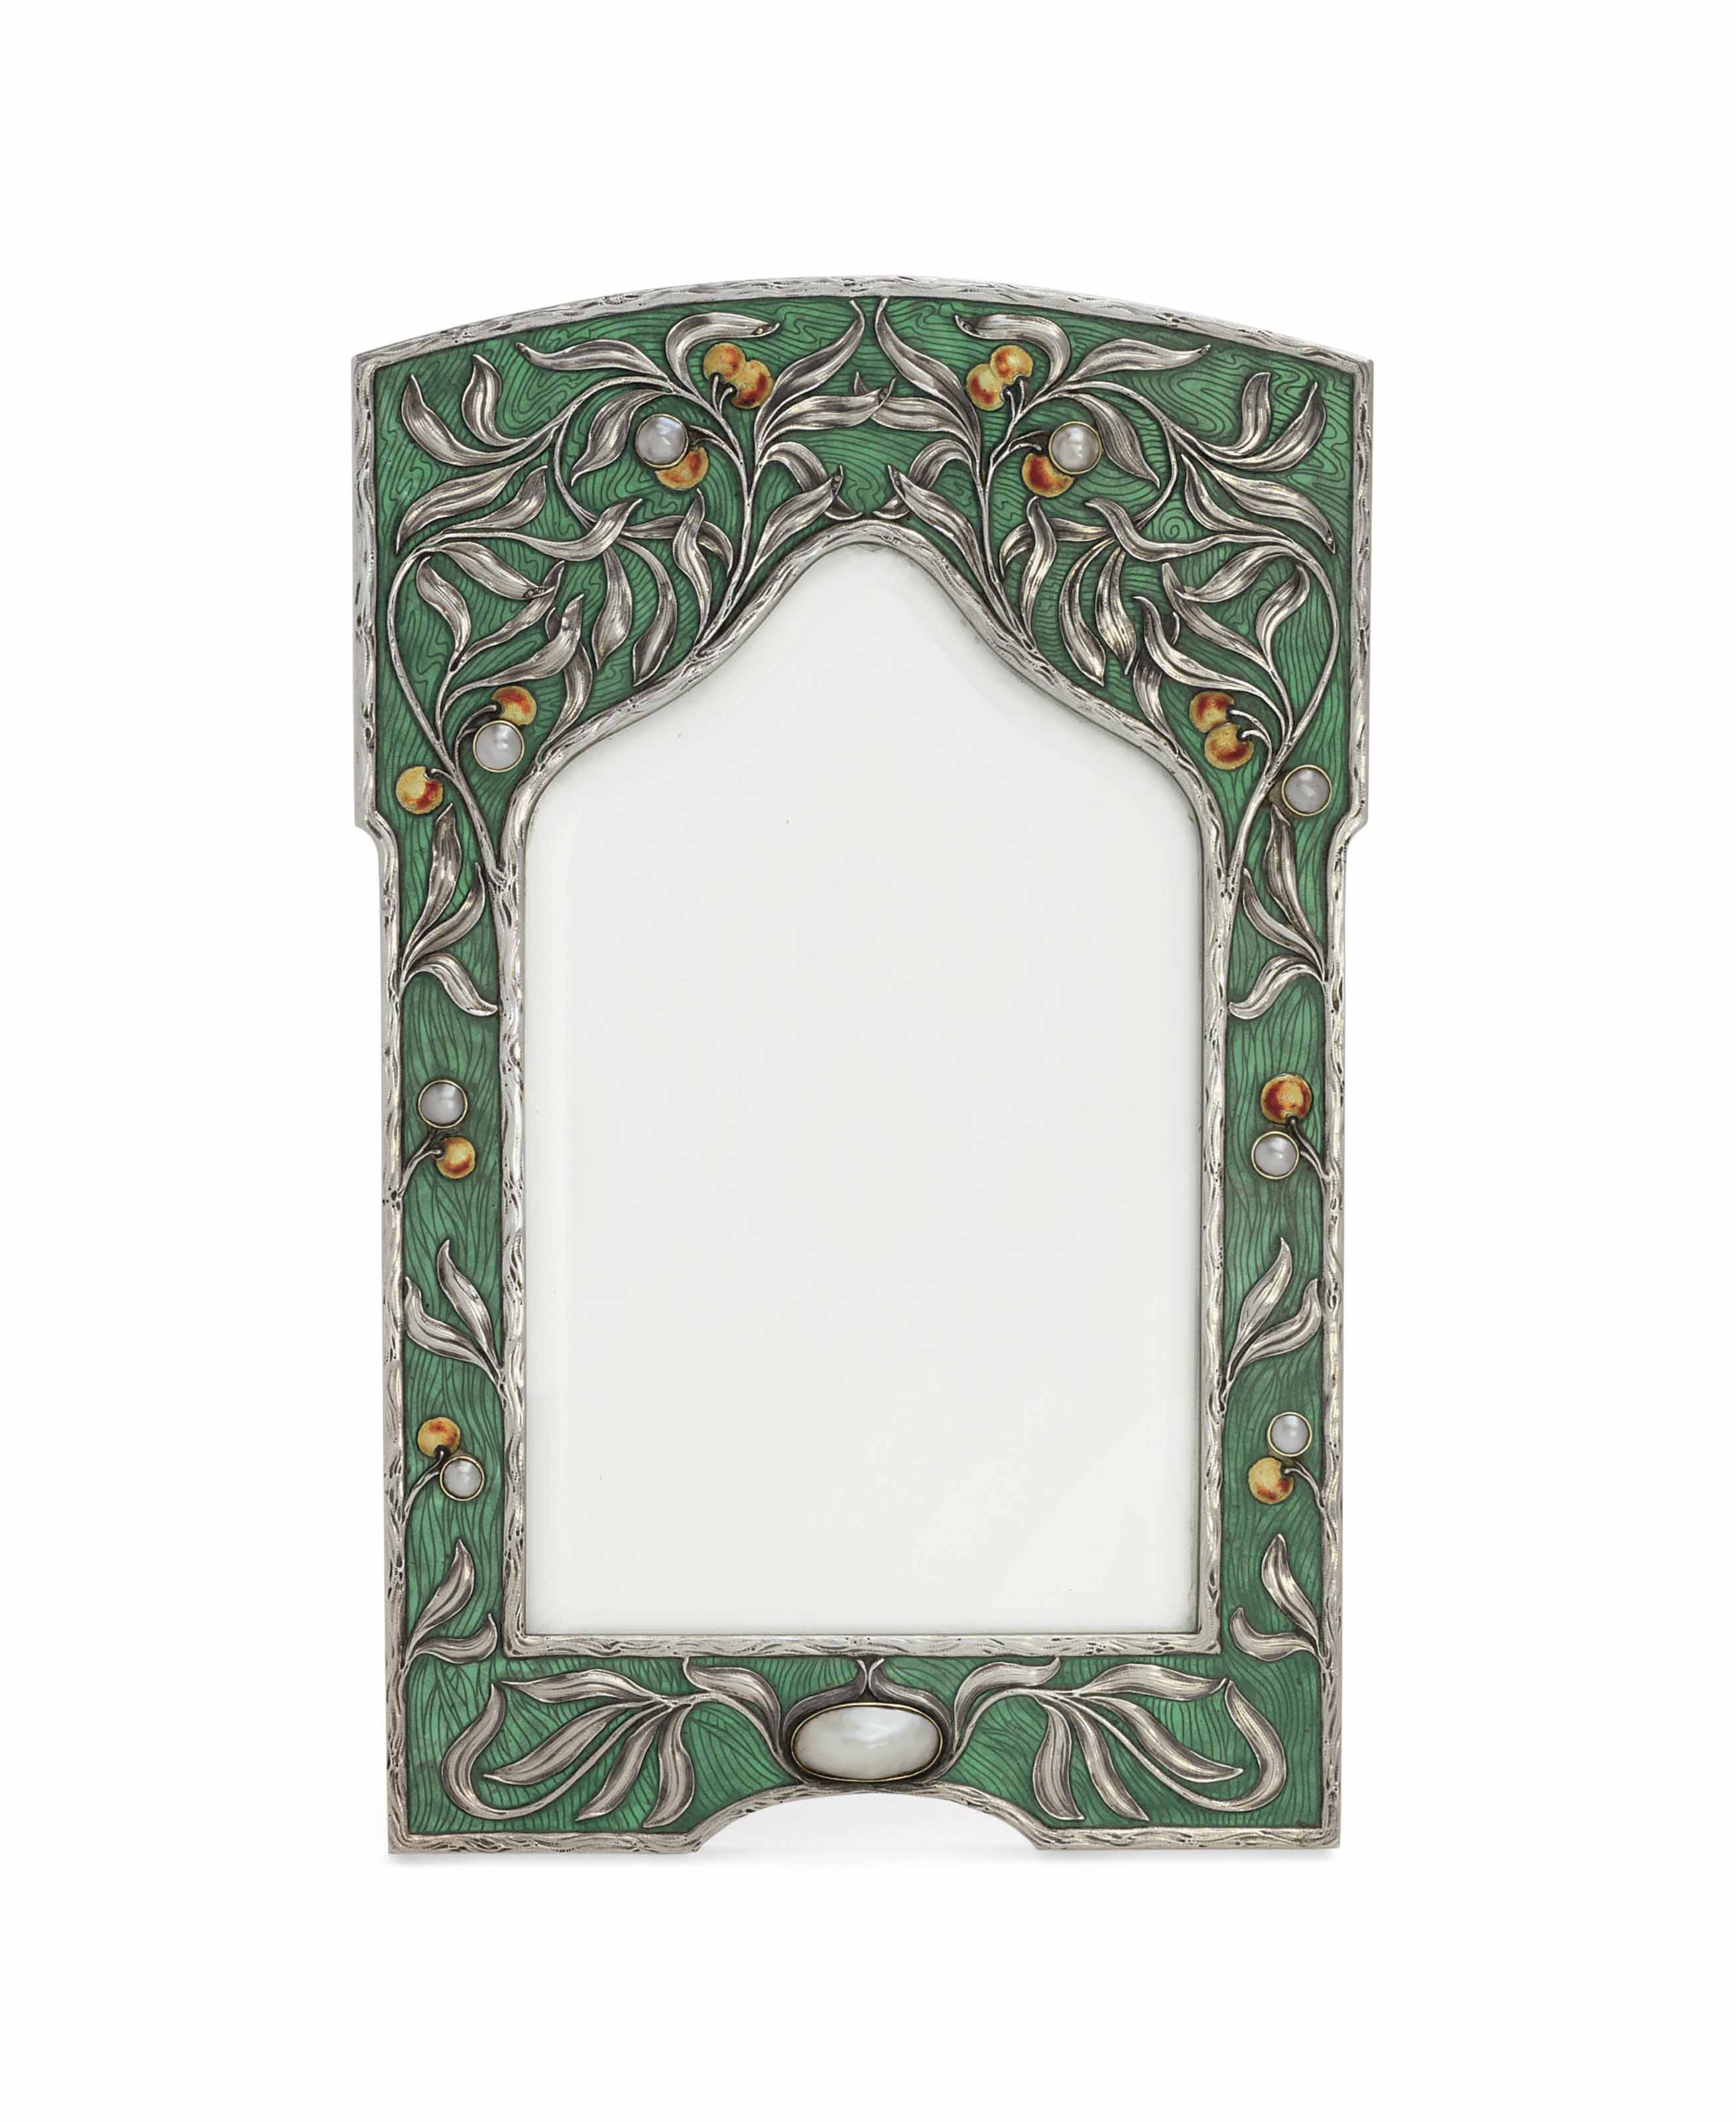 A JEWELLED SILVER-GILT AND CHAMPLEVÉ ENAMEL PHOTOGRAPH FRAME